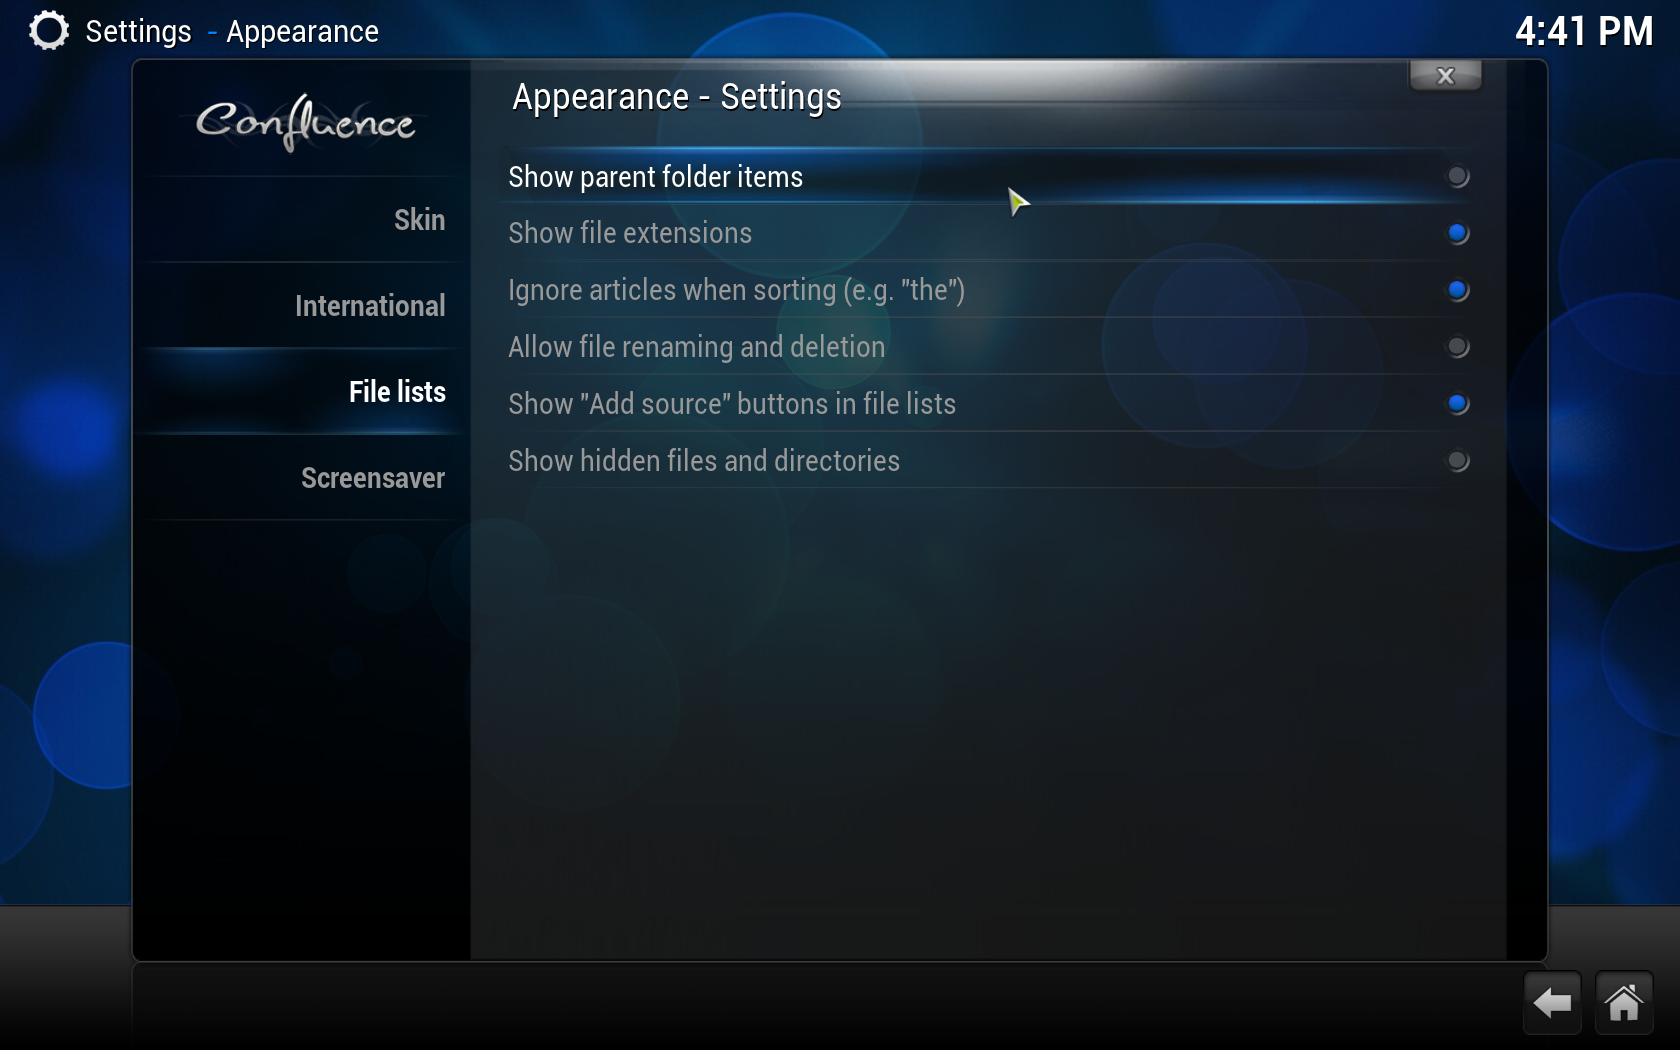 XBMC Media Center : Setup Guide, Knowlege Base & Support - AVS Forum